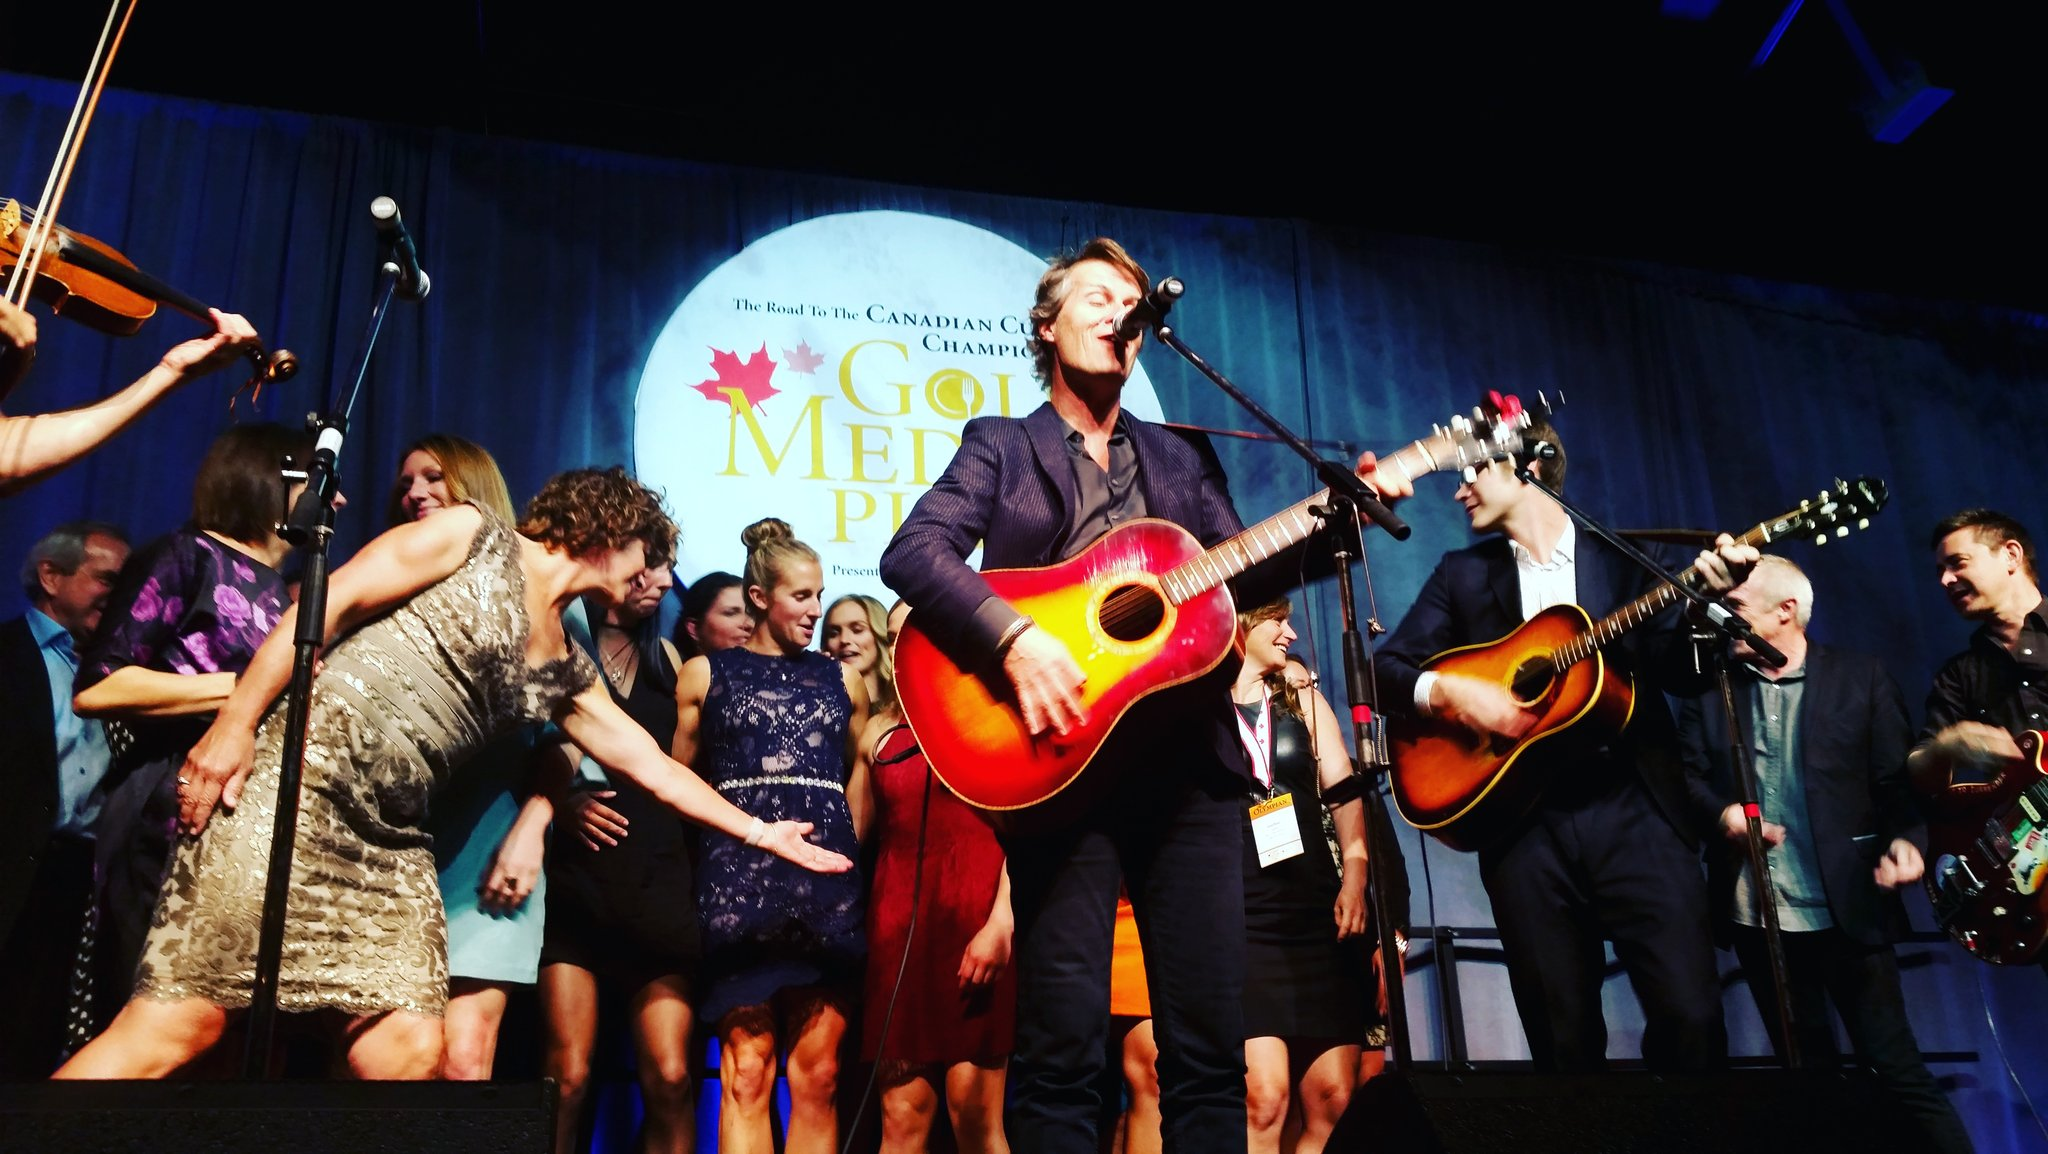 Great night @GoldMedalPlates #halifax @JimCuddy @TeamCanada @CBCOlympics #mygmp #champions https://t.co/3uxKrIyFMD